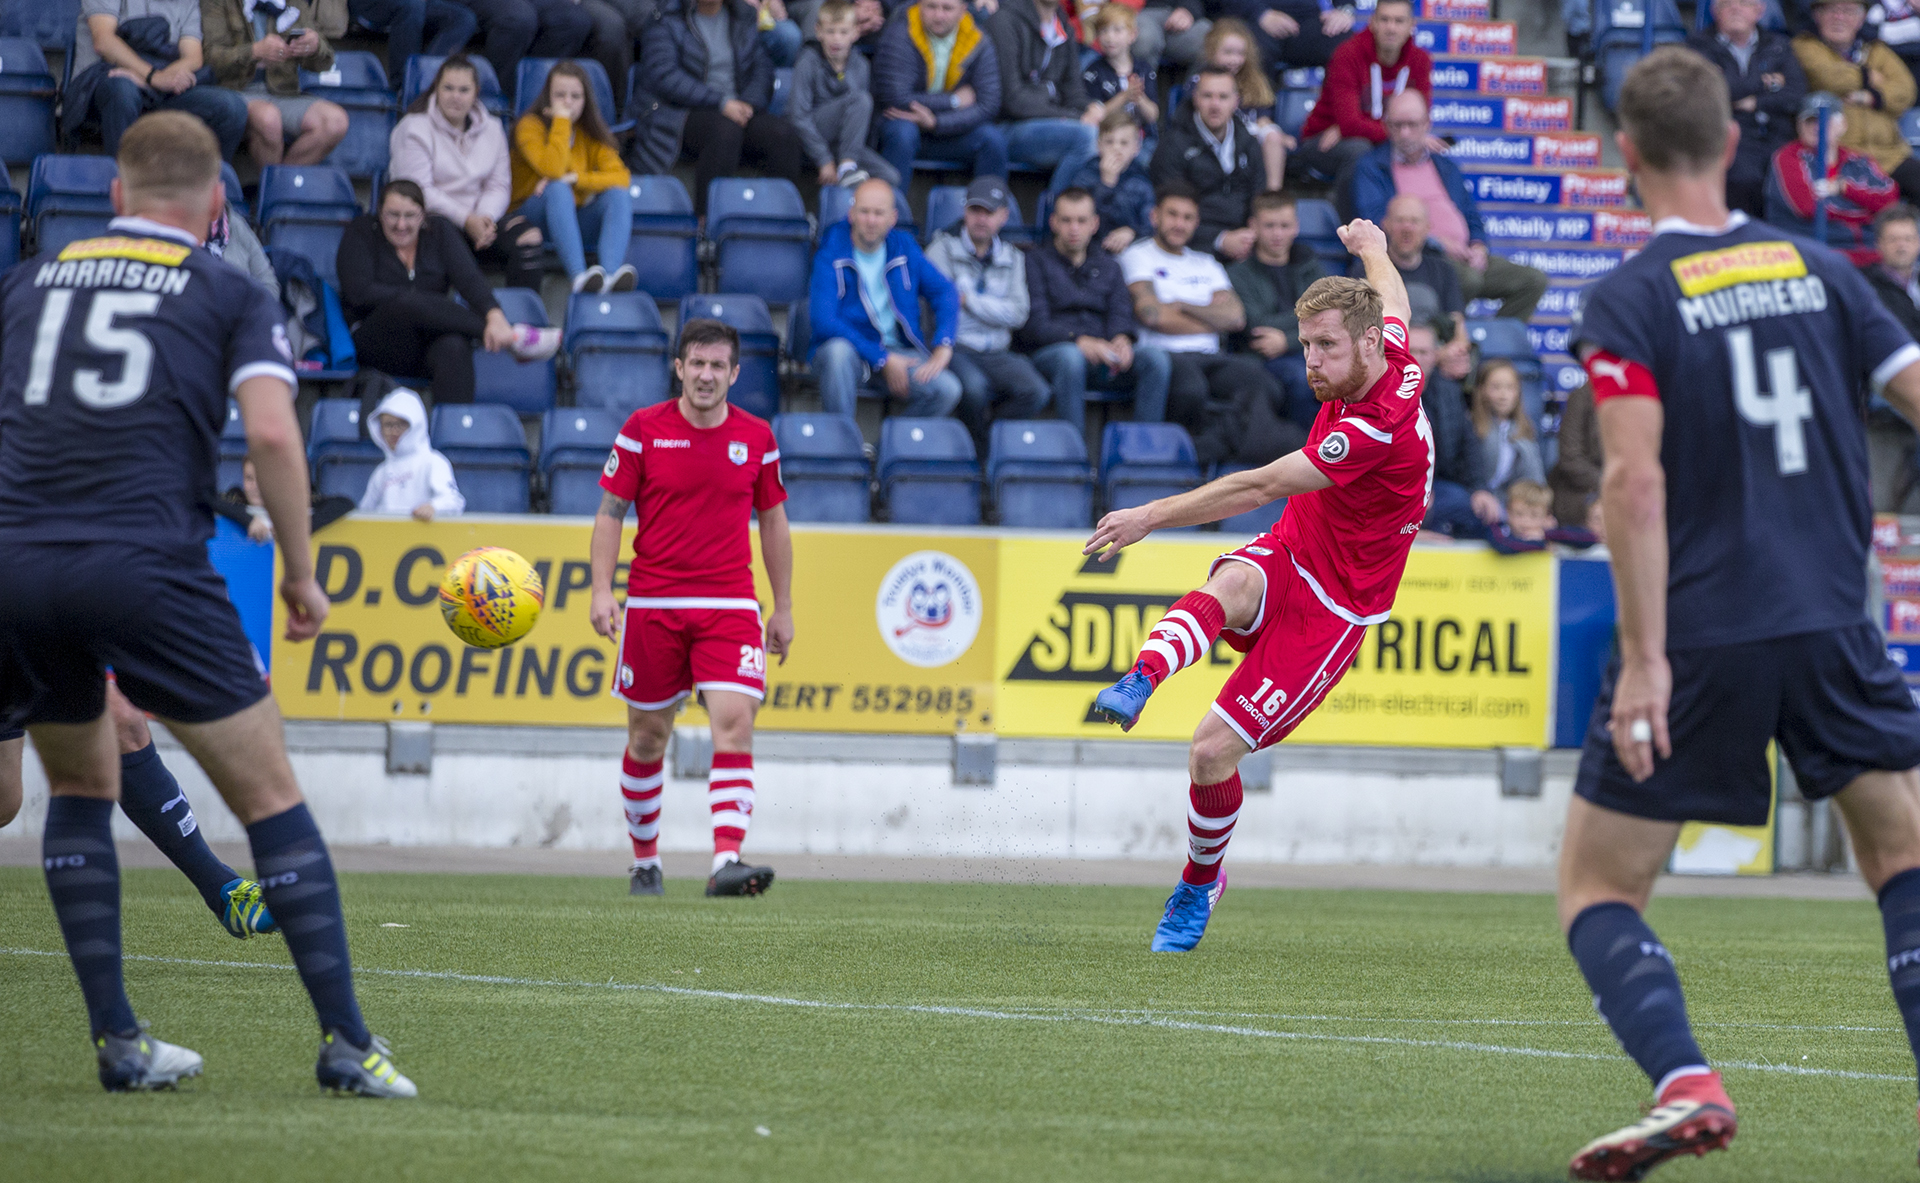 Jay Owen shoots for goal in the first half © NCM Media